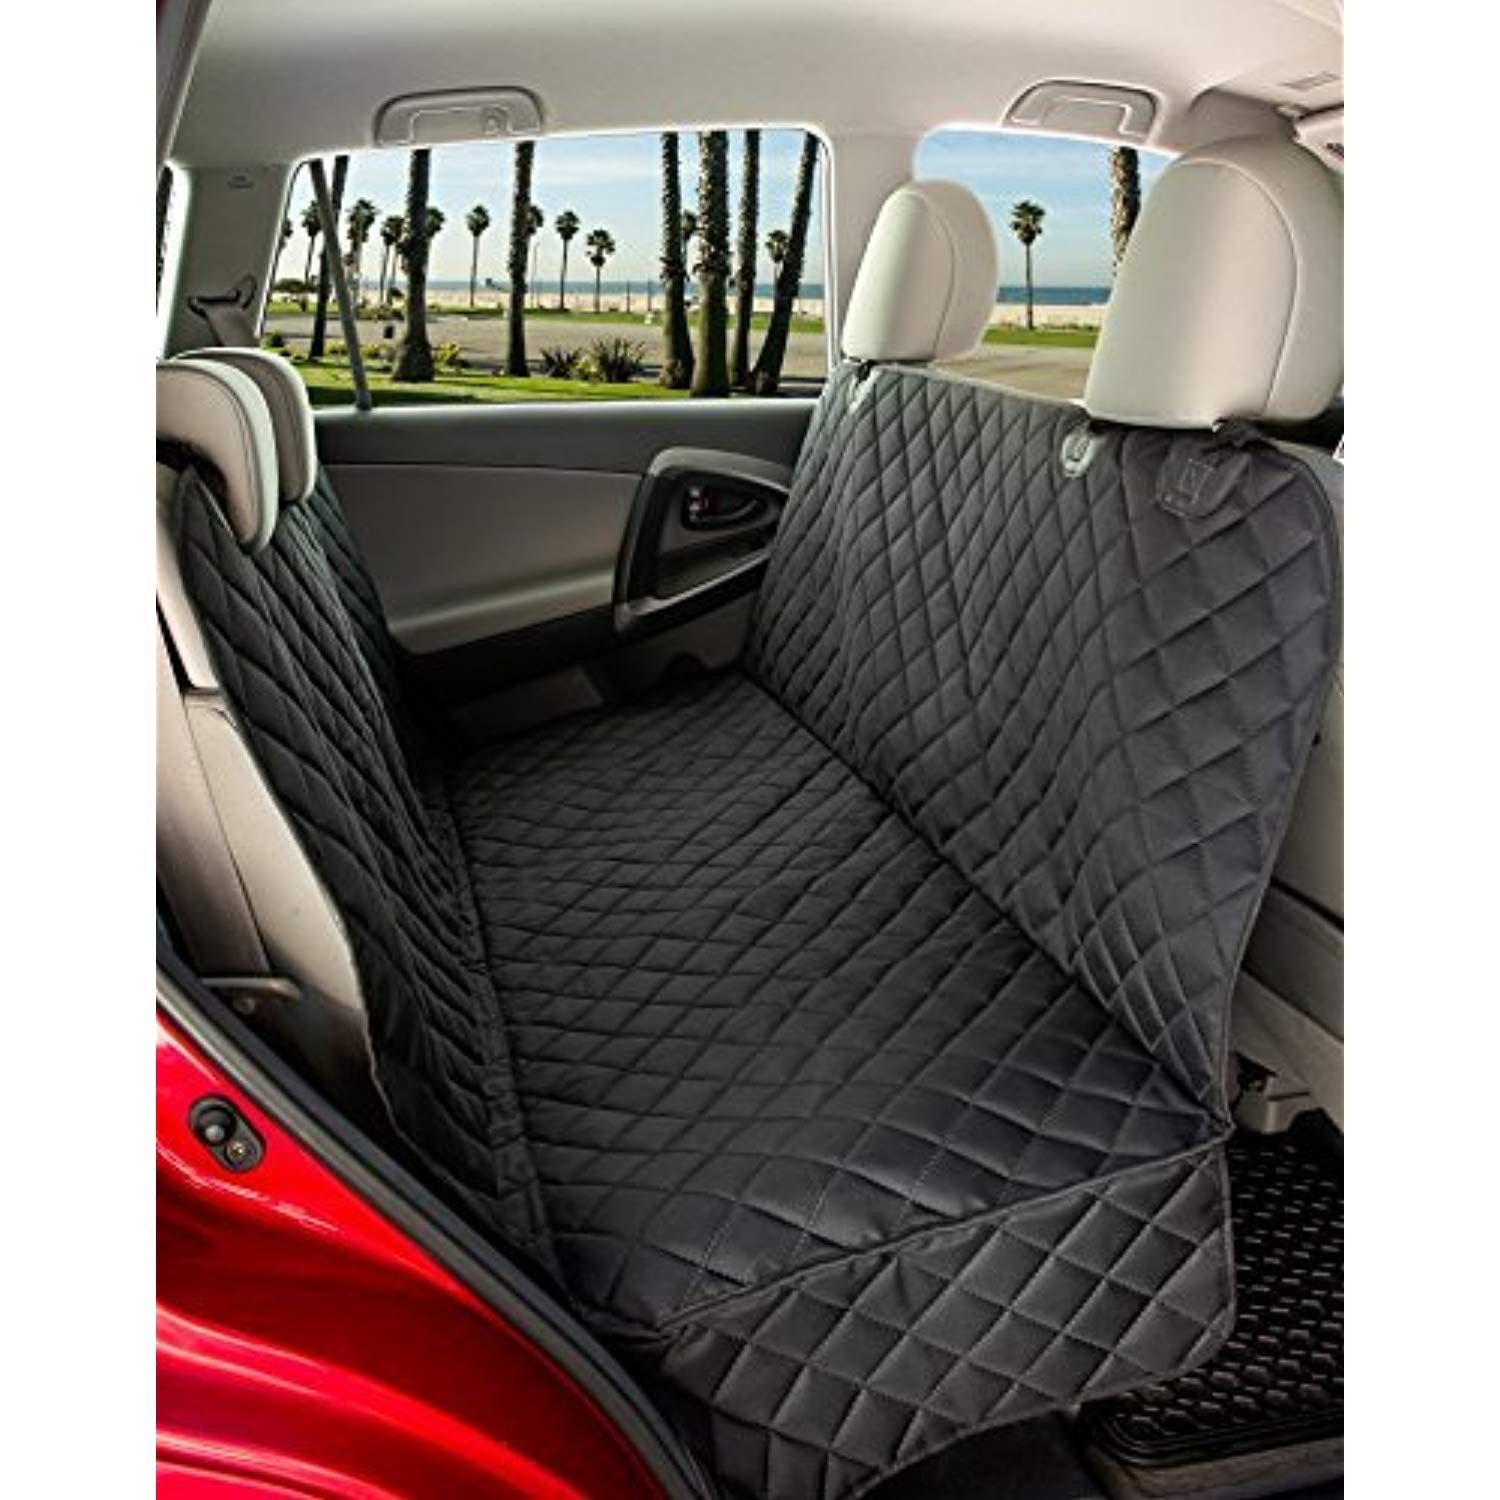 Pleasant Dog Seat Cover Car Seat Cover Hammock For Cars Trucks And Onthecornerstone Fun Painted Chair Ideas Images Onthecornerstoneorg